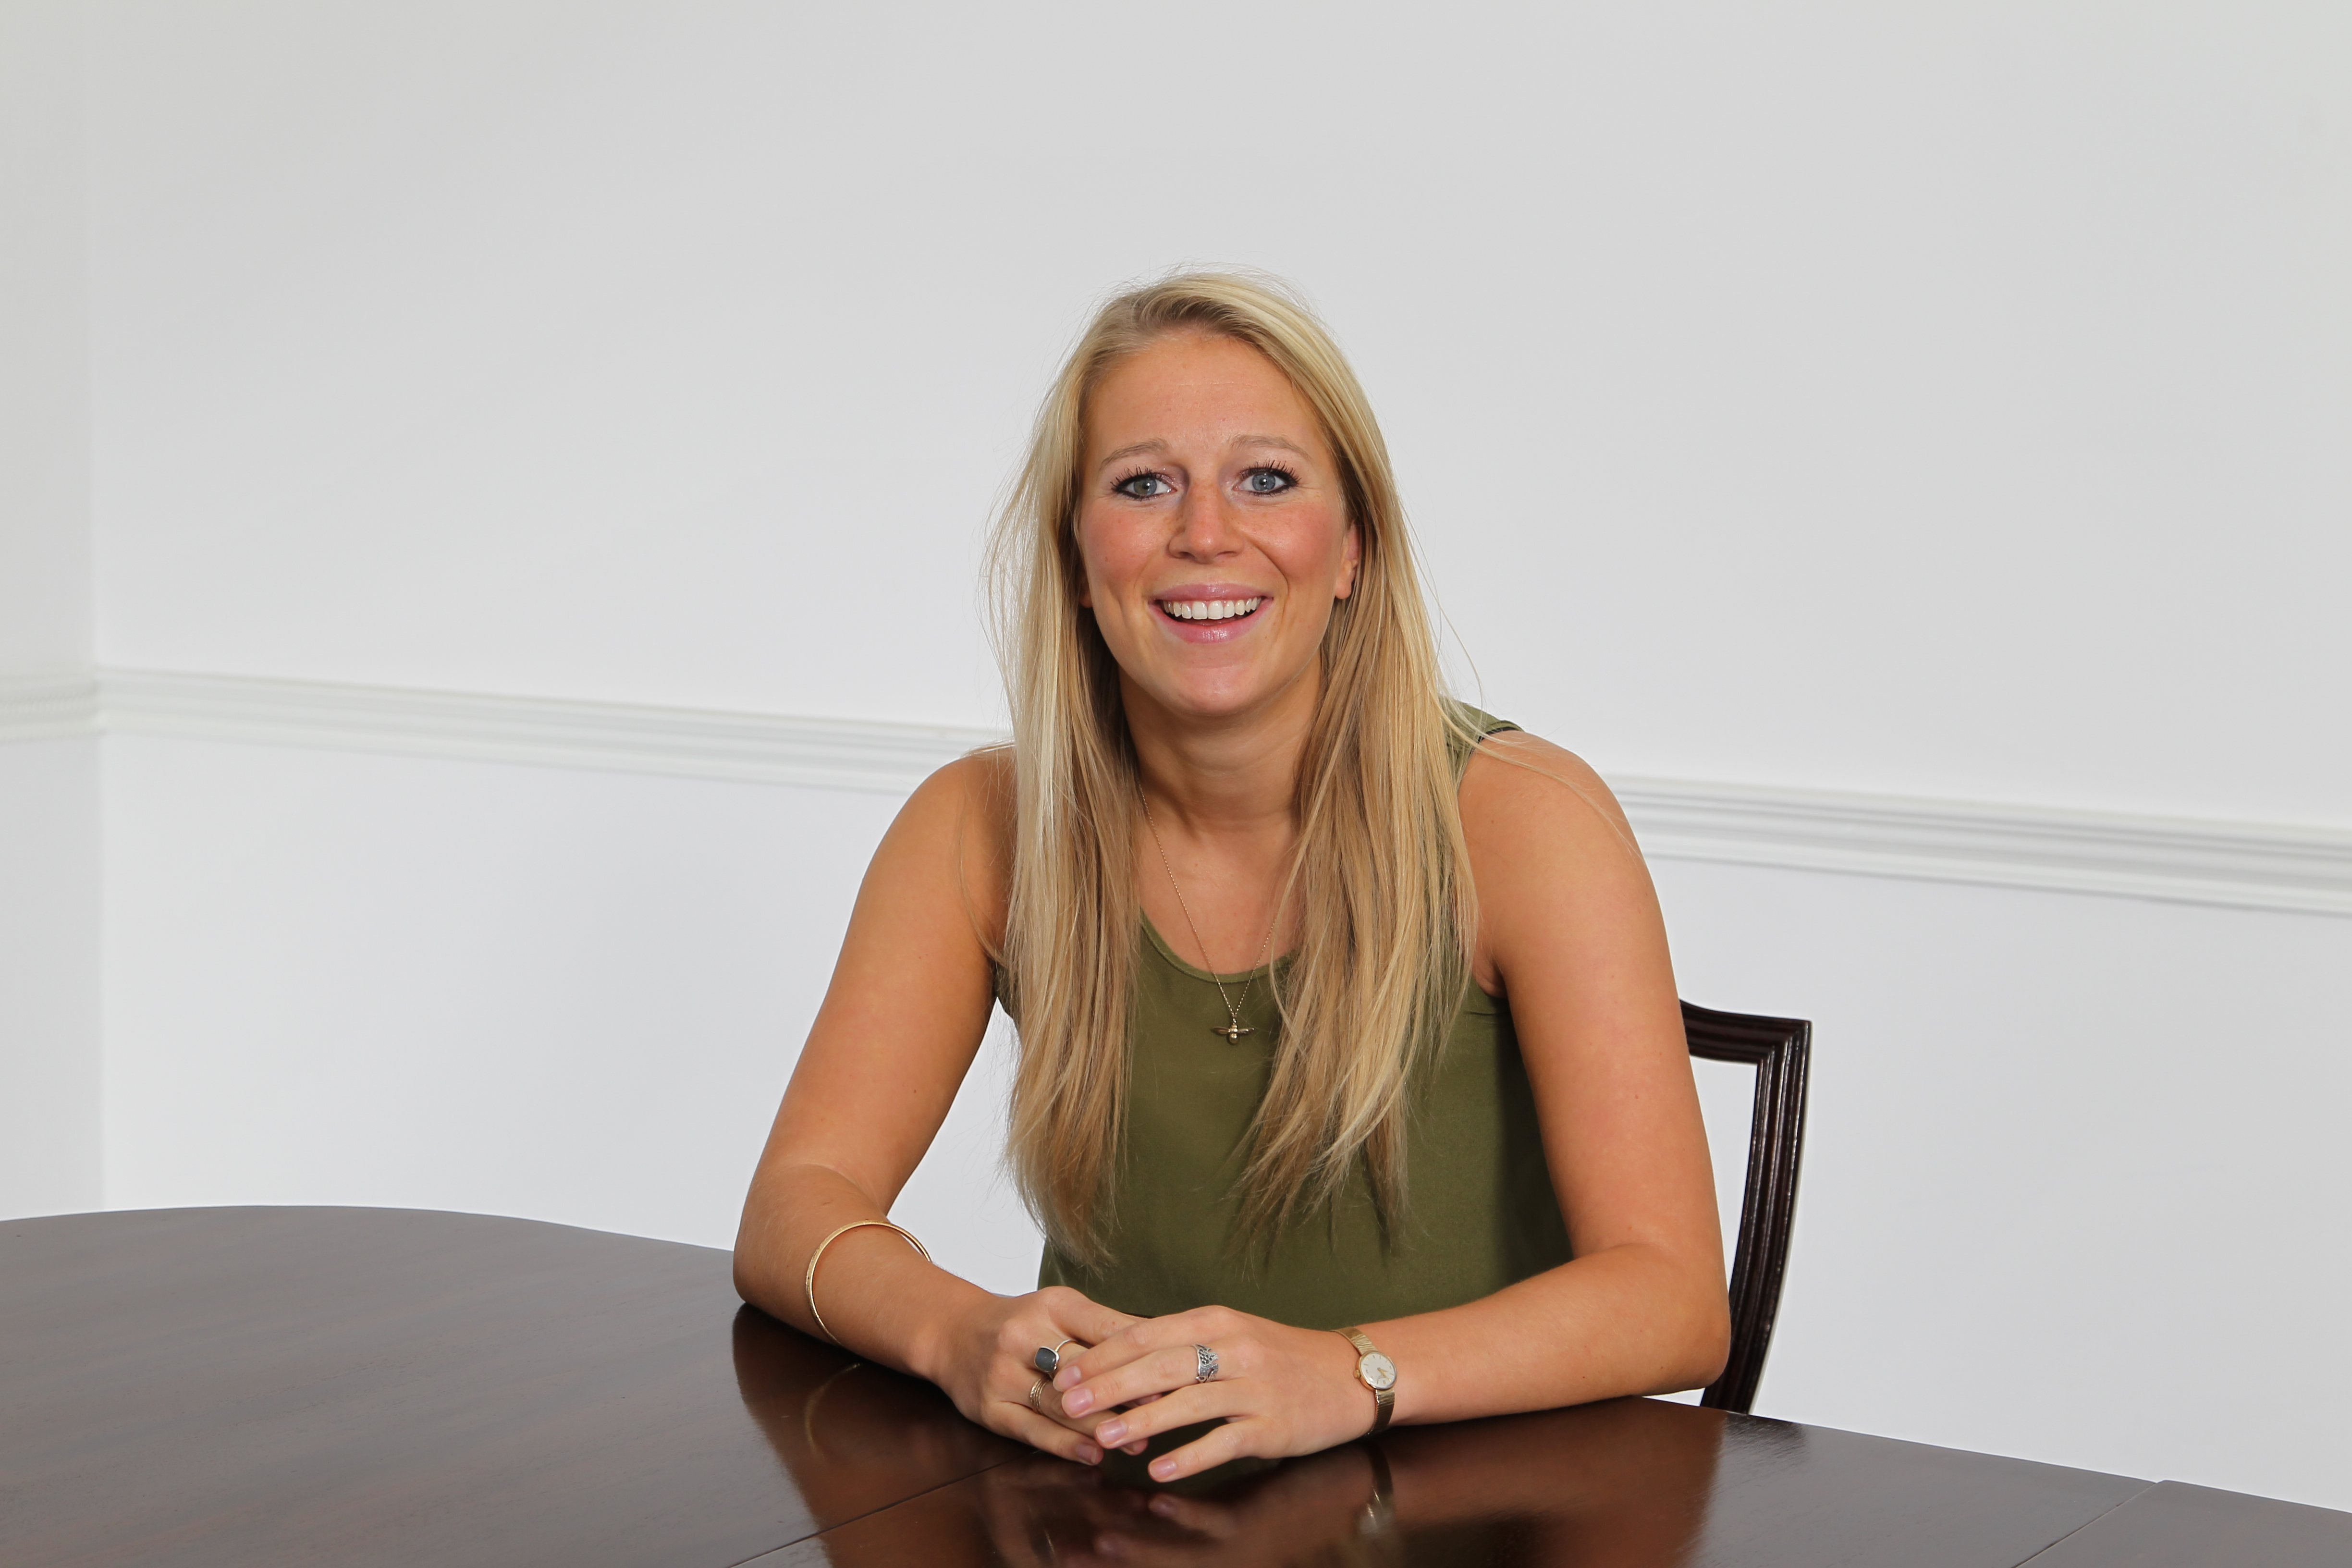 Forsters LLP Best Recruiter – Medium City Firm | Joanna Thompson